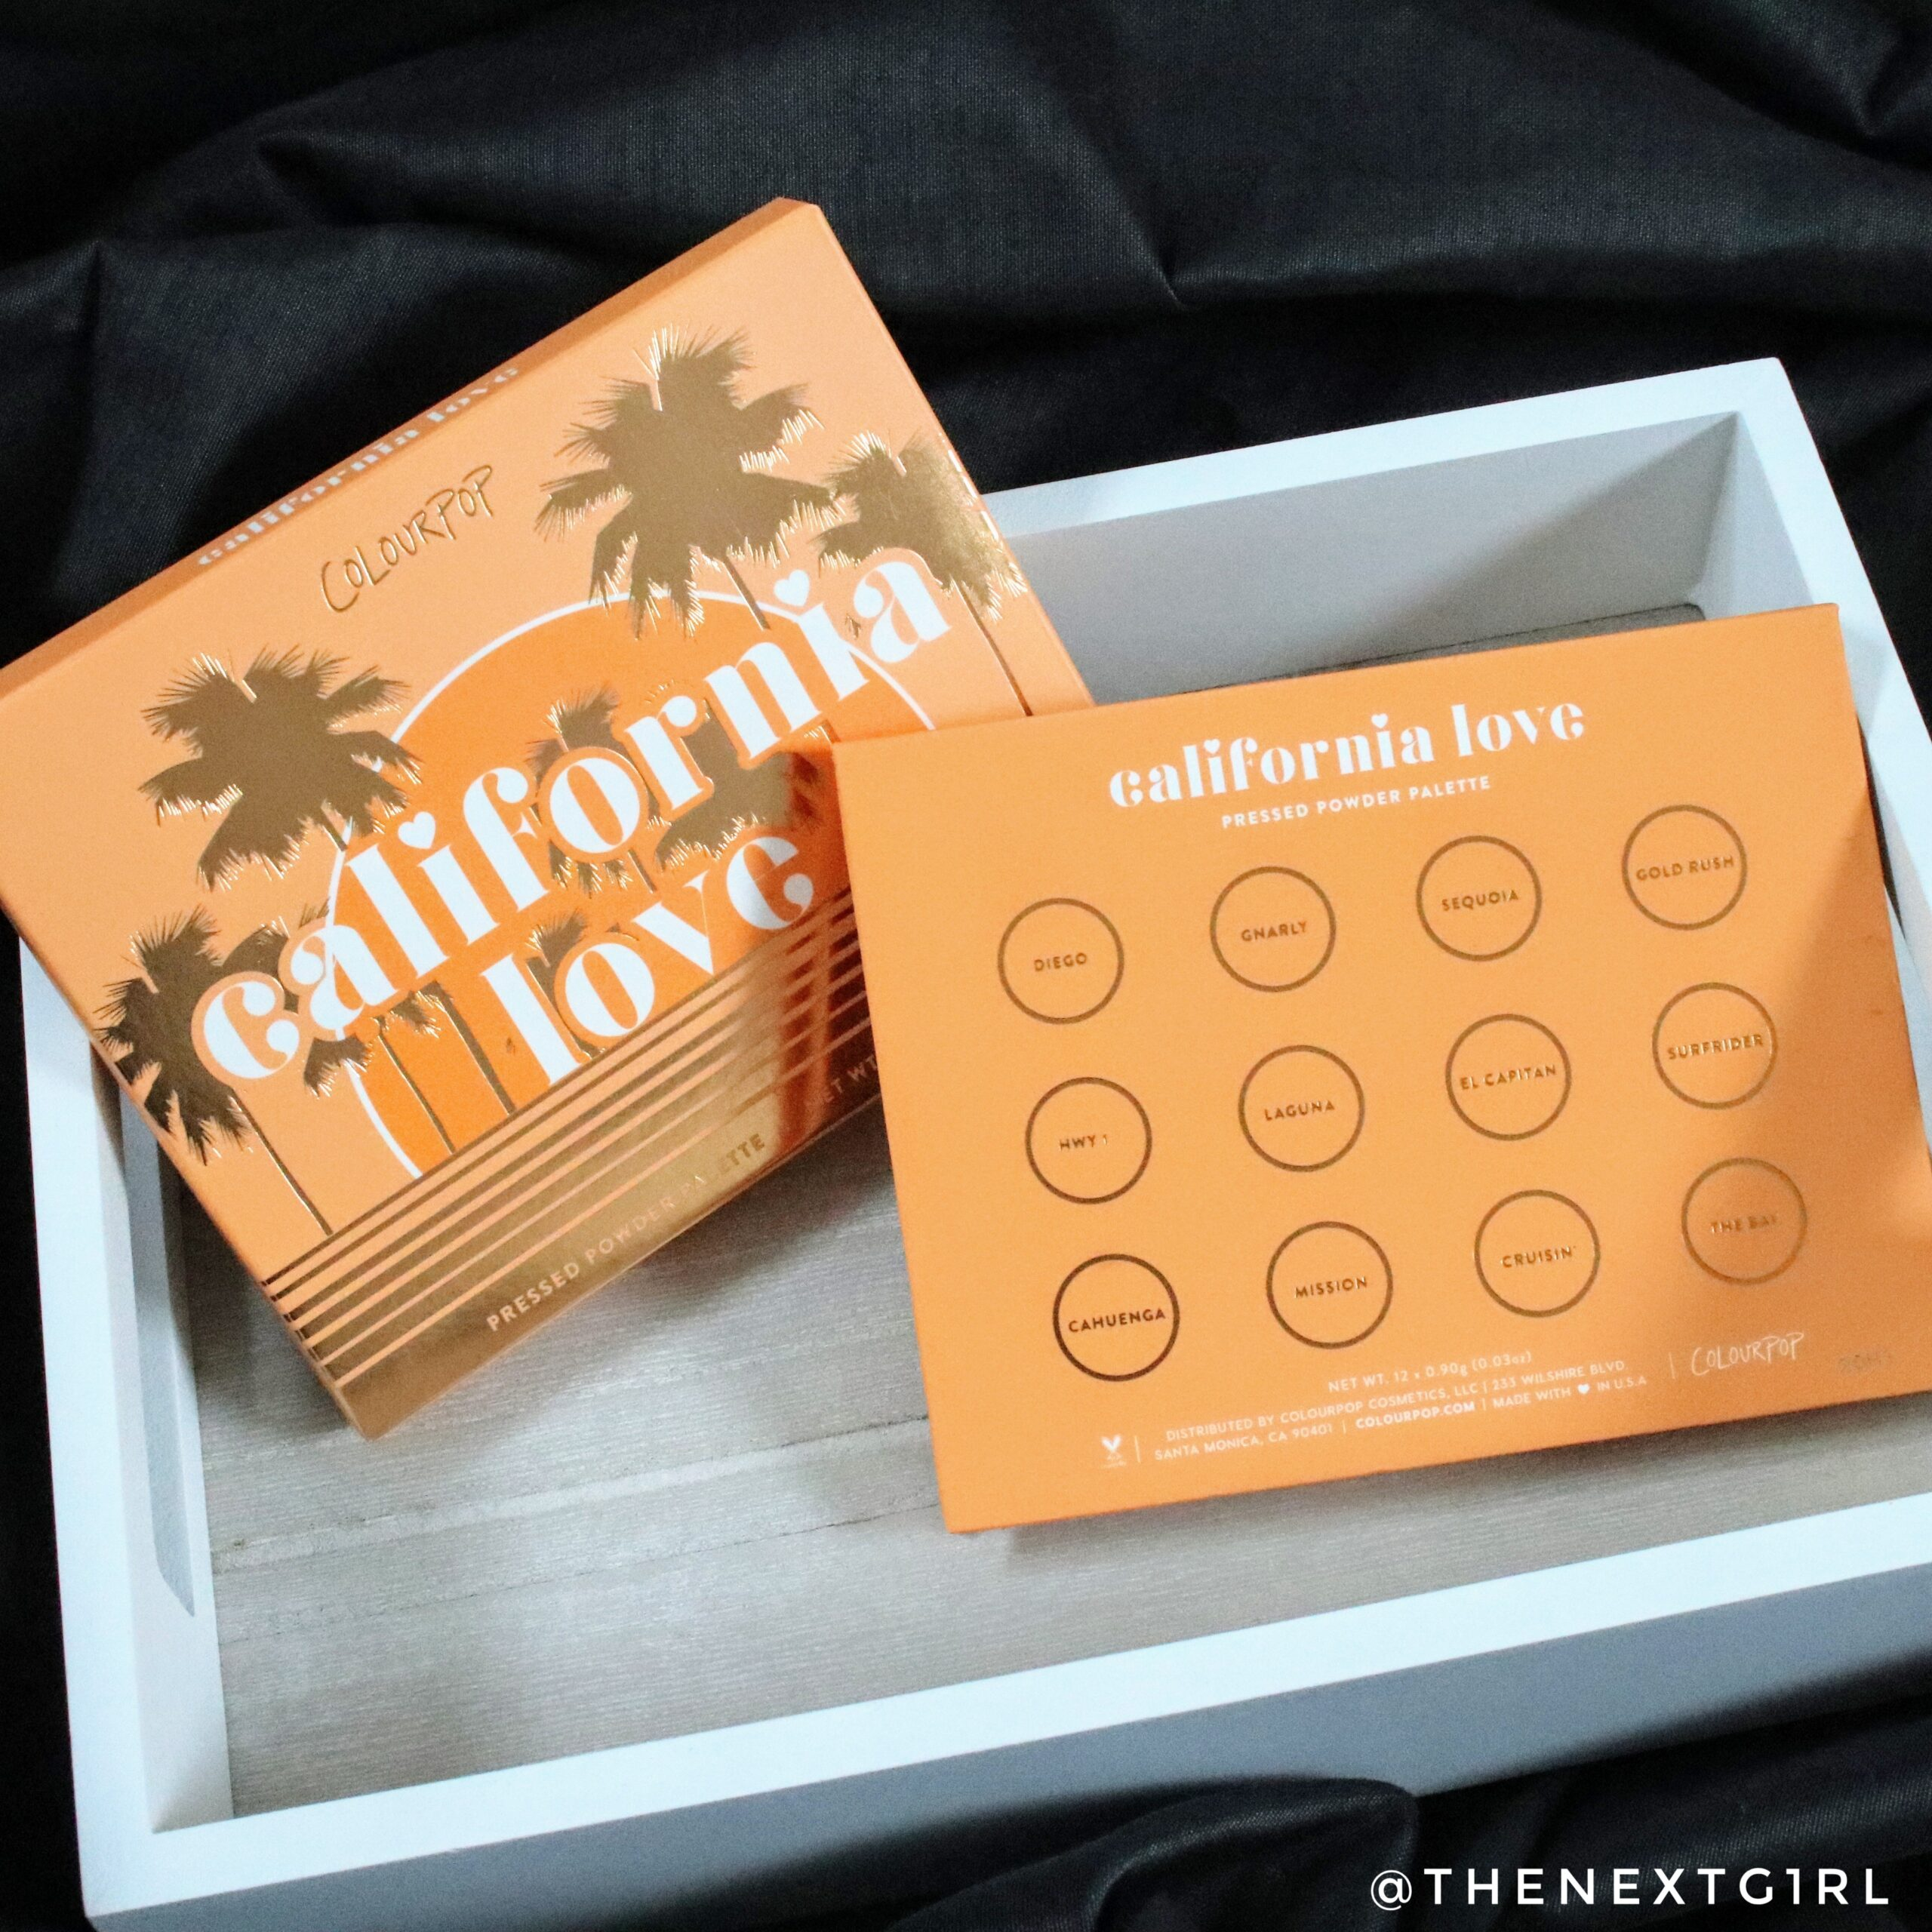 Colourpop California Love palette achterkant